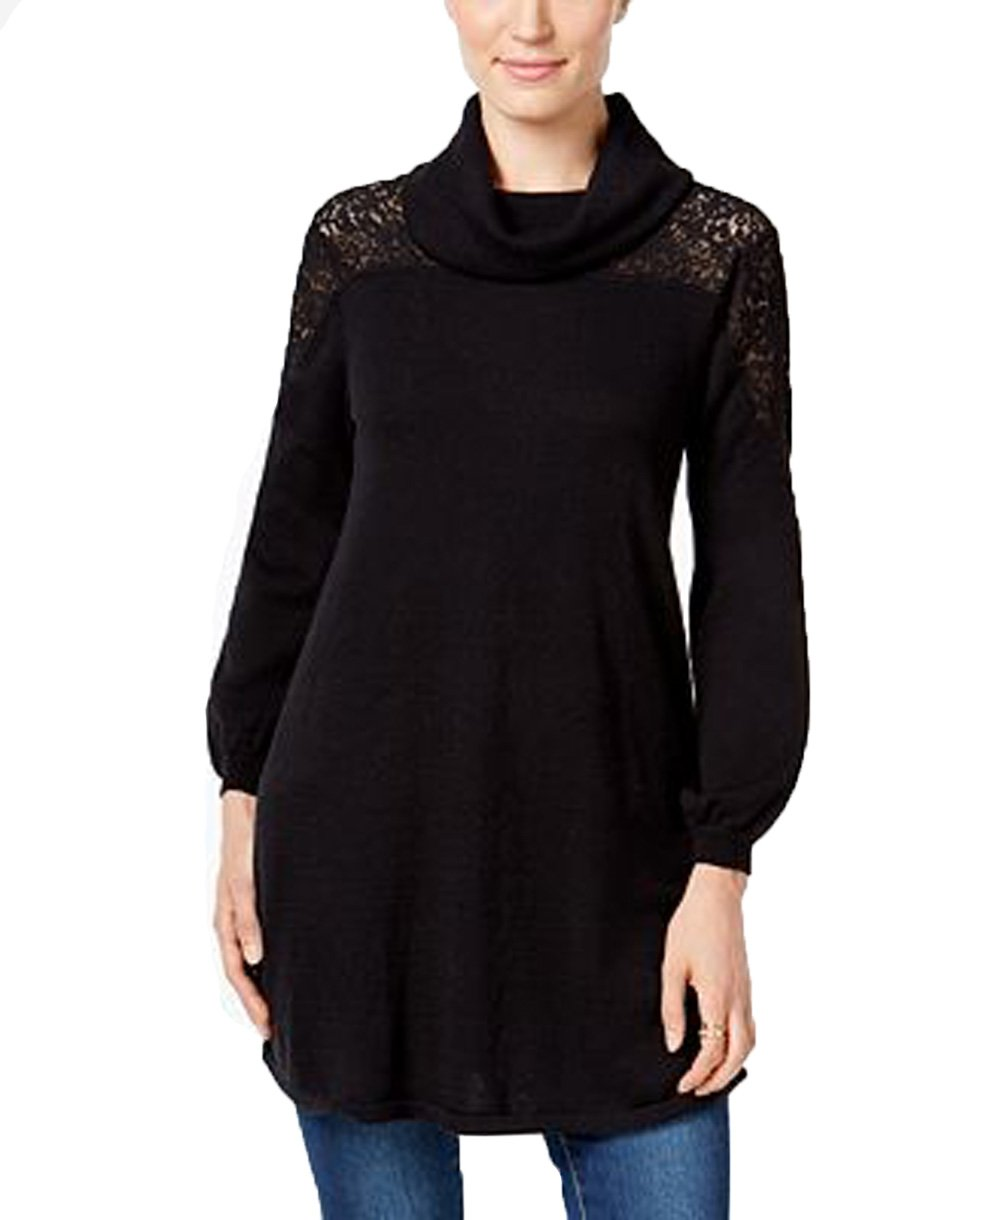 Style & Co. Womens Petites Lace Cowl-Neck Pullover Sweater Black PM